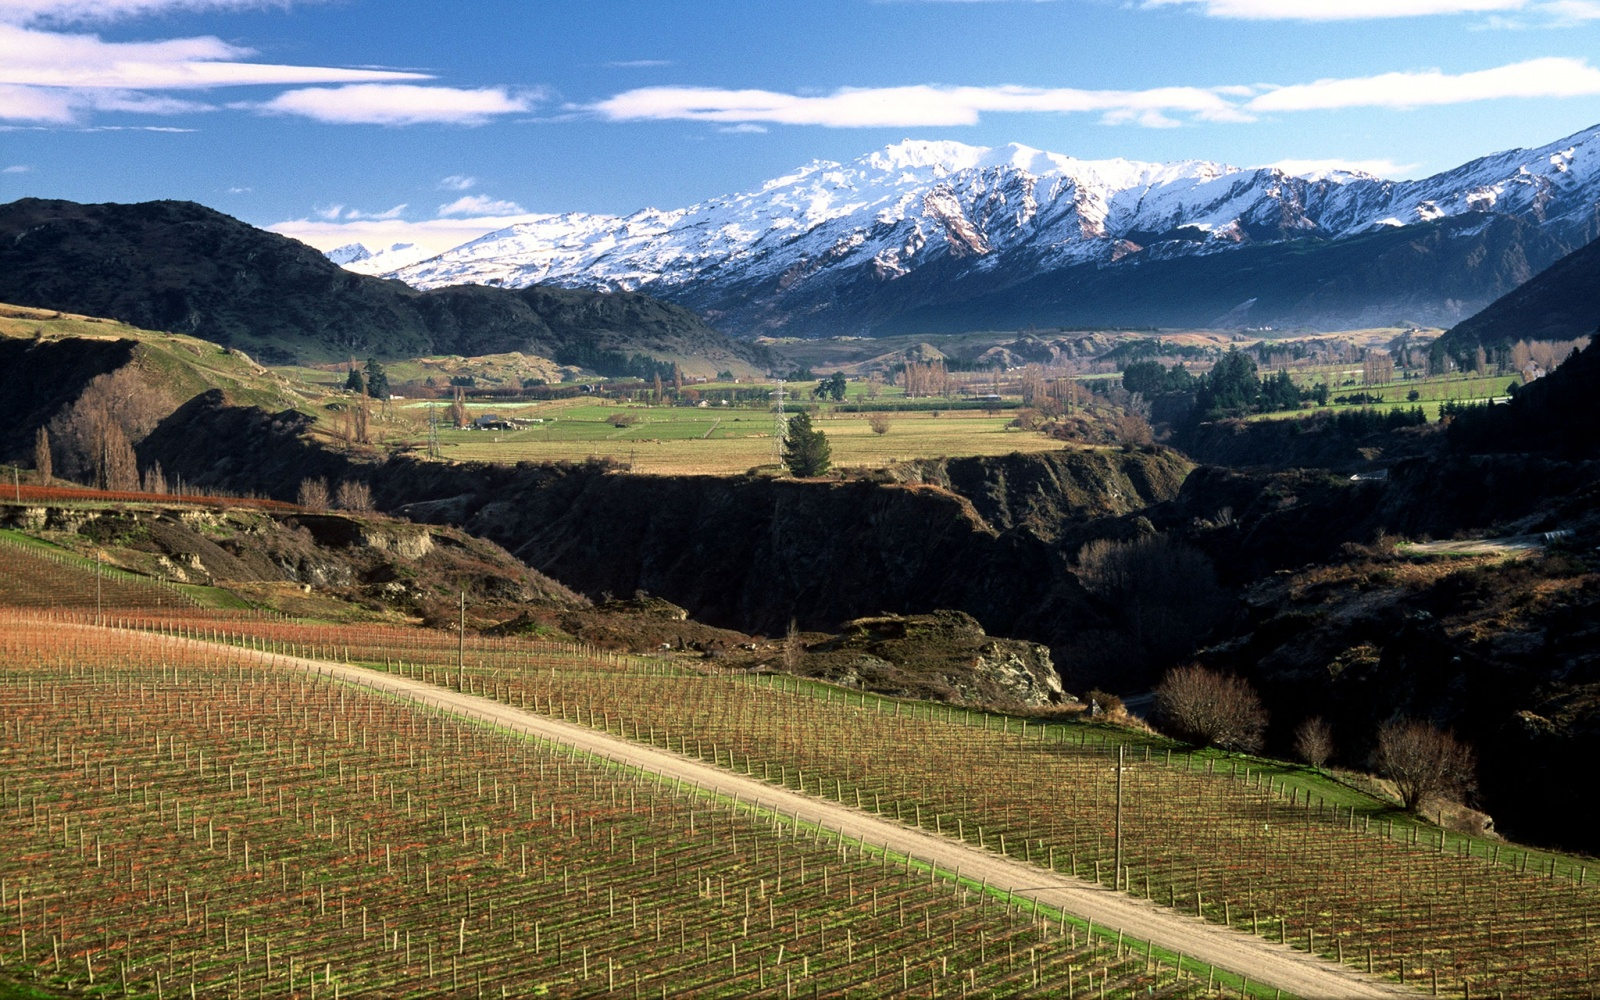 Chard Farm in Central Otago, New Zealand